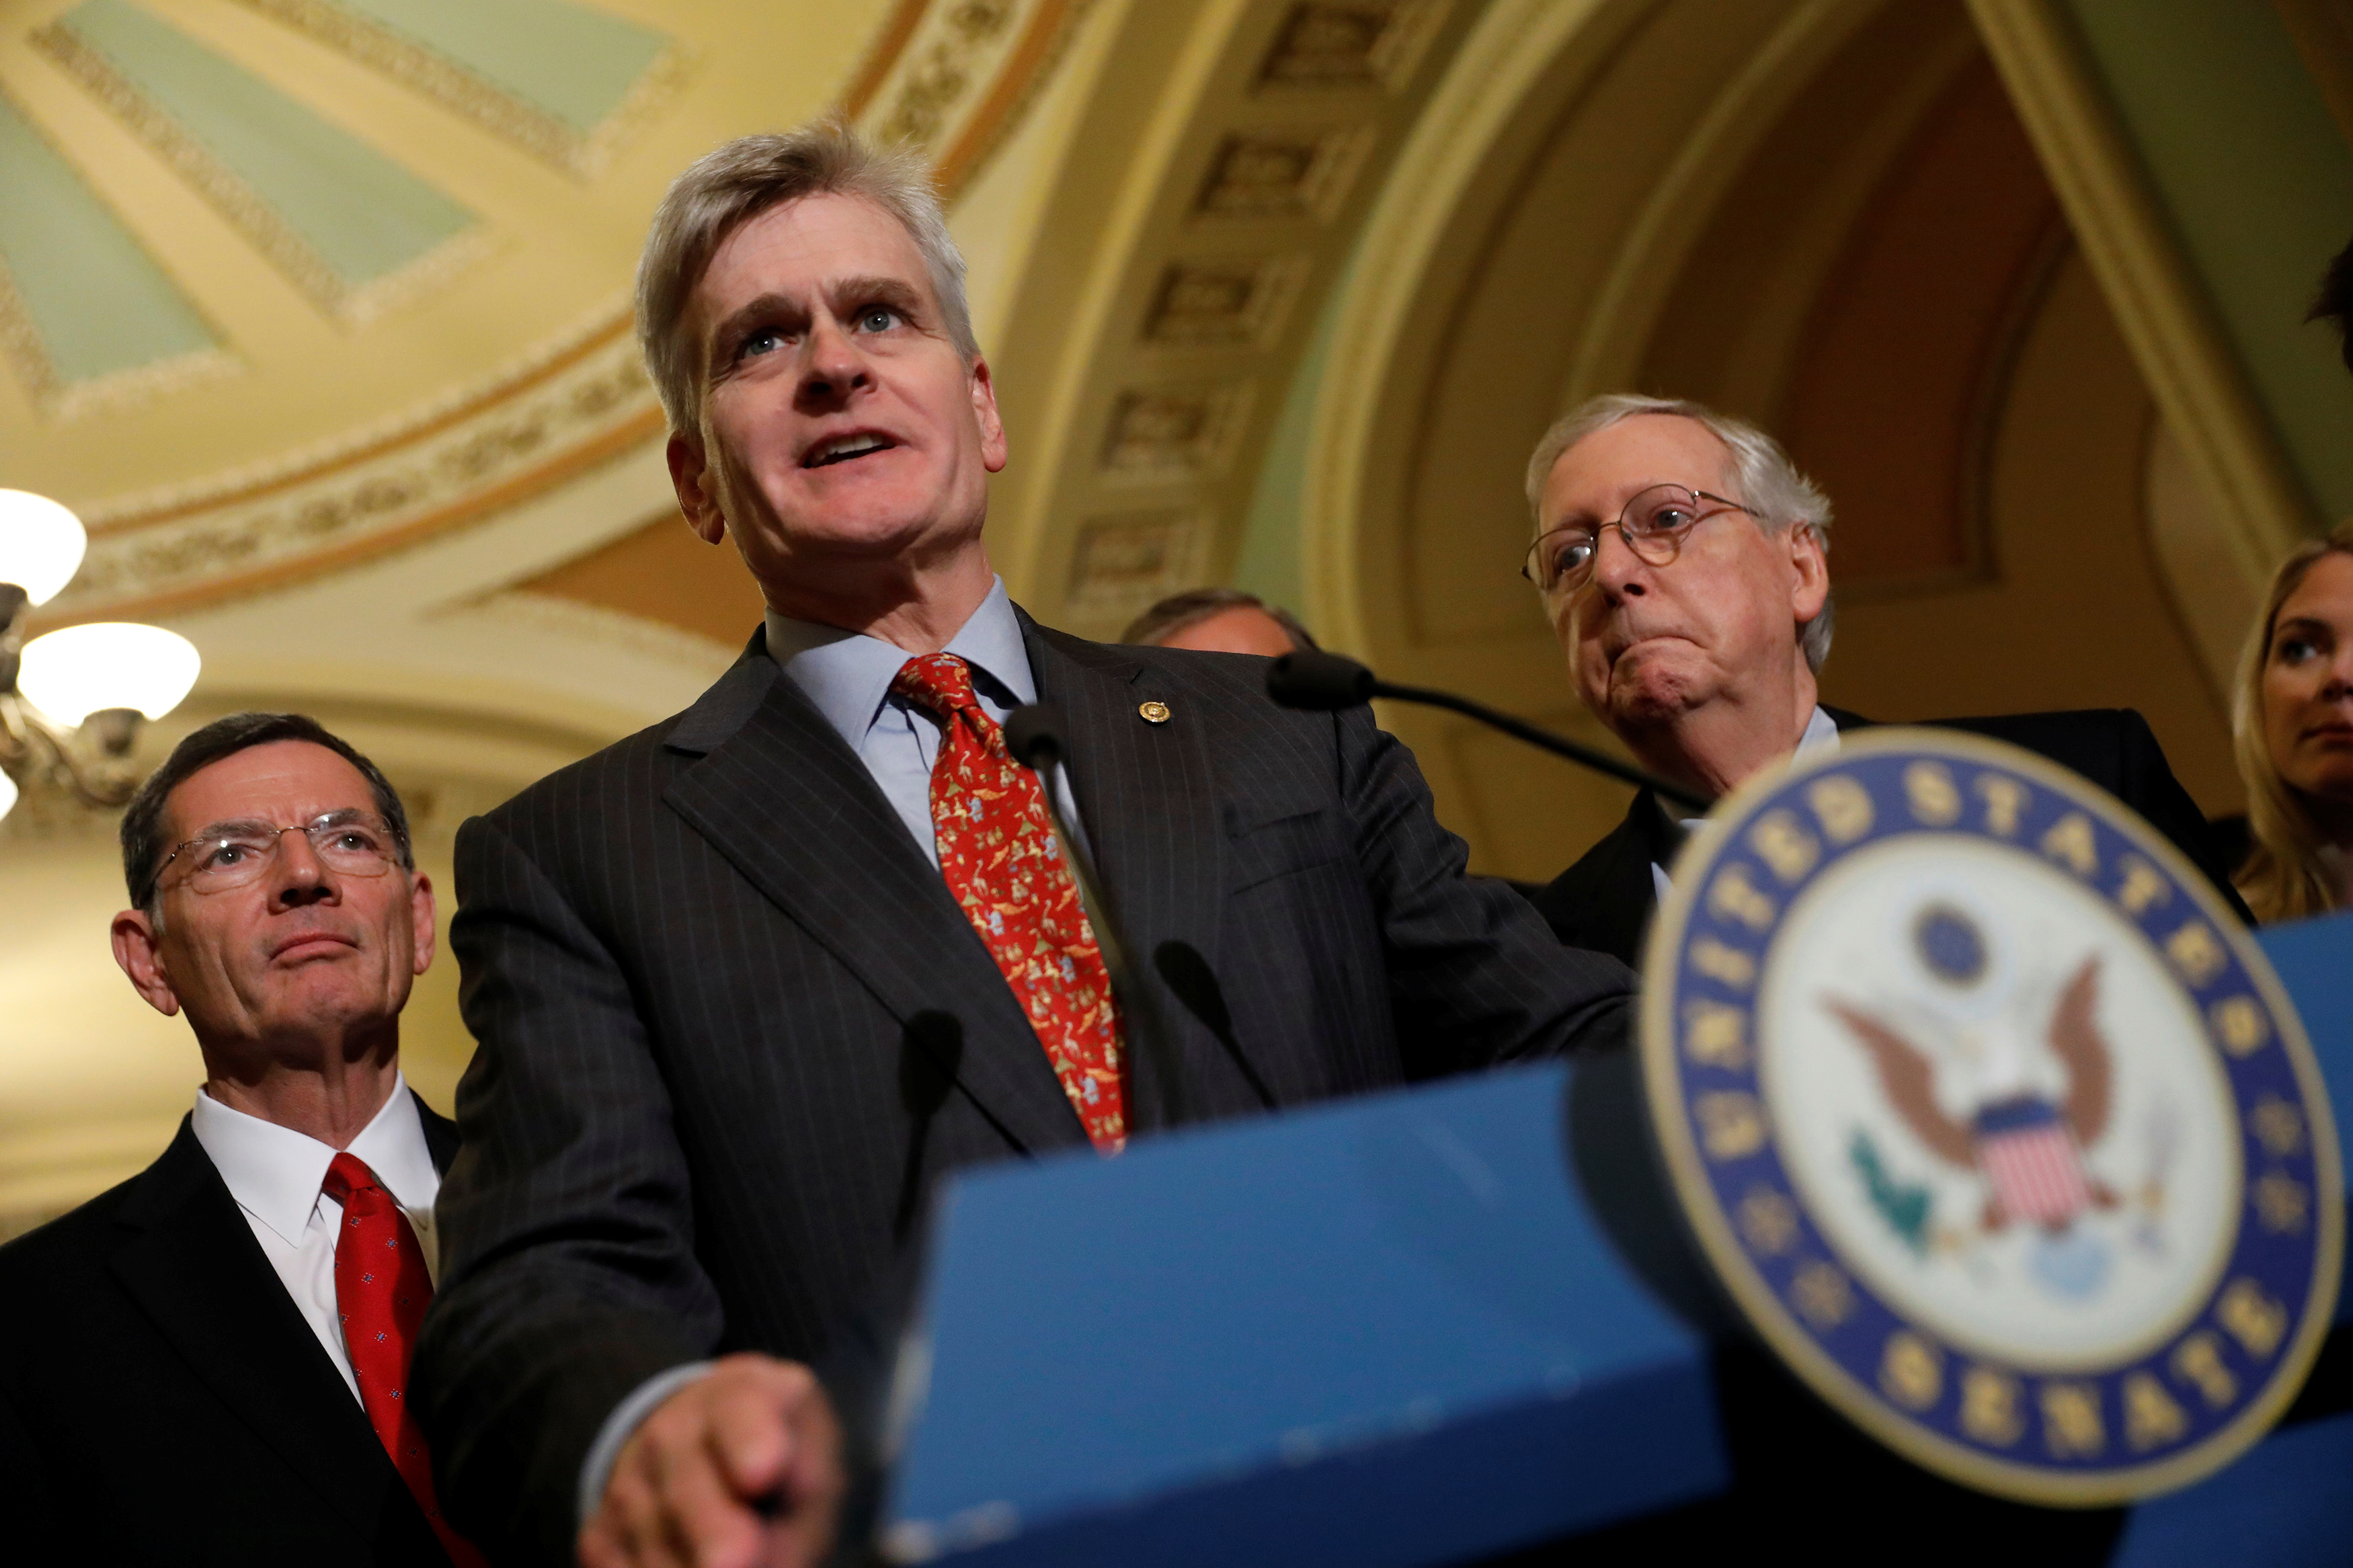 Sen. Cassidy (R-LA), accompanied by Sen. Barrasso (R-WY) and Senate Majority Leader McConnell, speaks with reporters about the Cassidy/Graham healthcare bill following the party luncheons on Capitol Hill in Washington